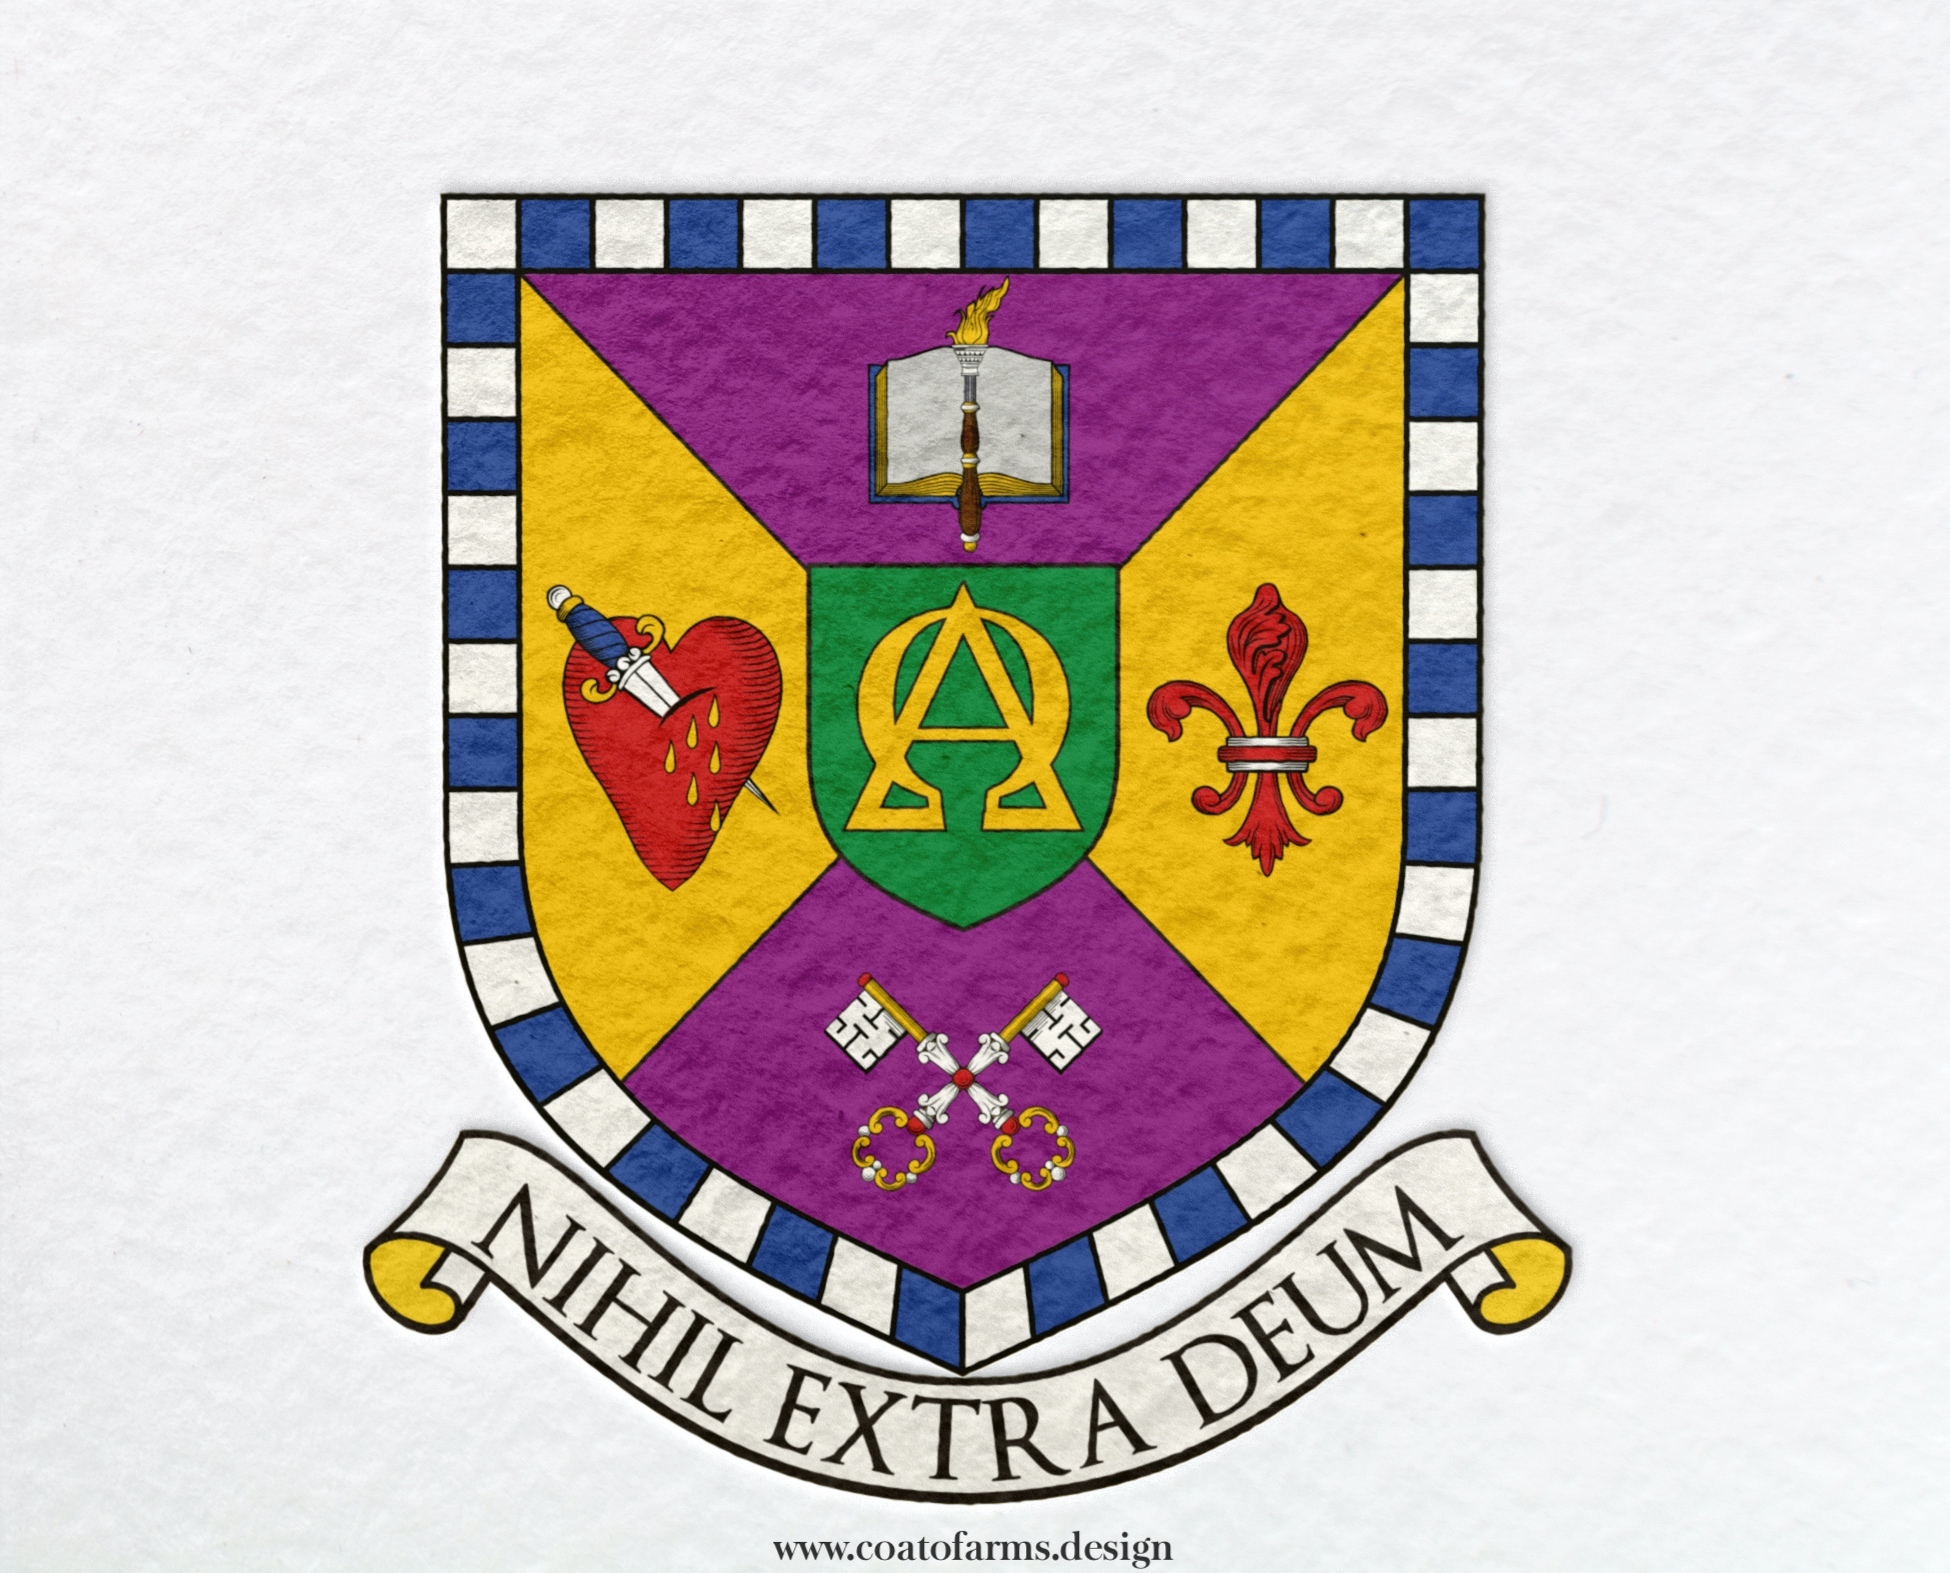 Ministerial seal or coat of arms (emblem) I designed for a client from Brazil small